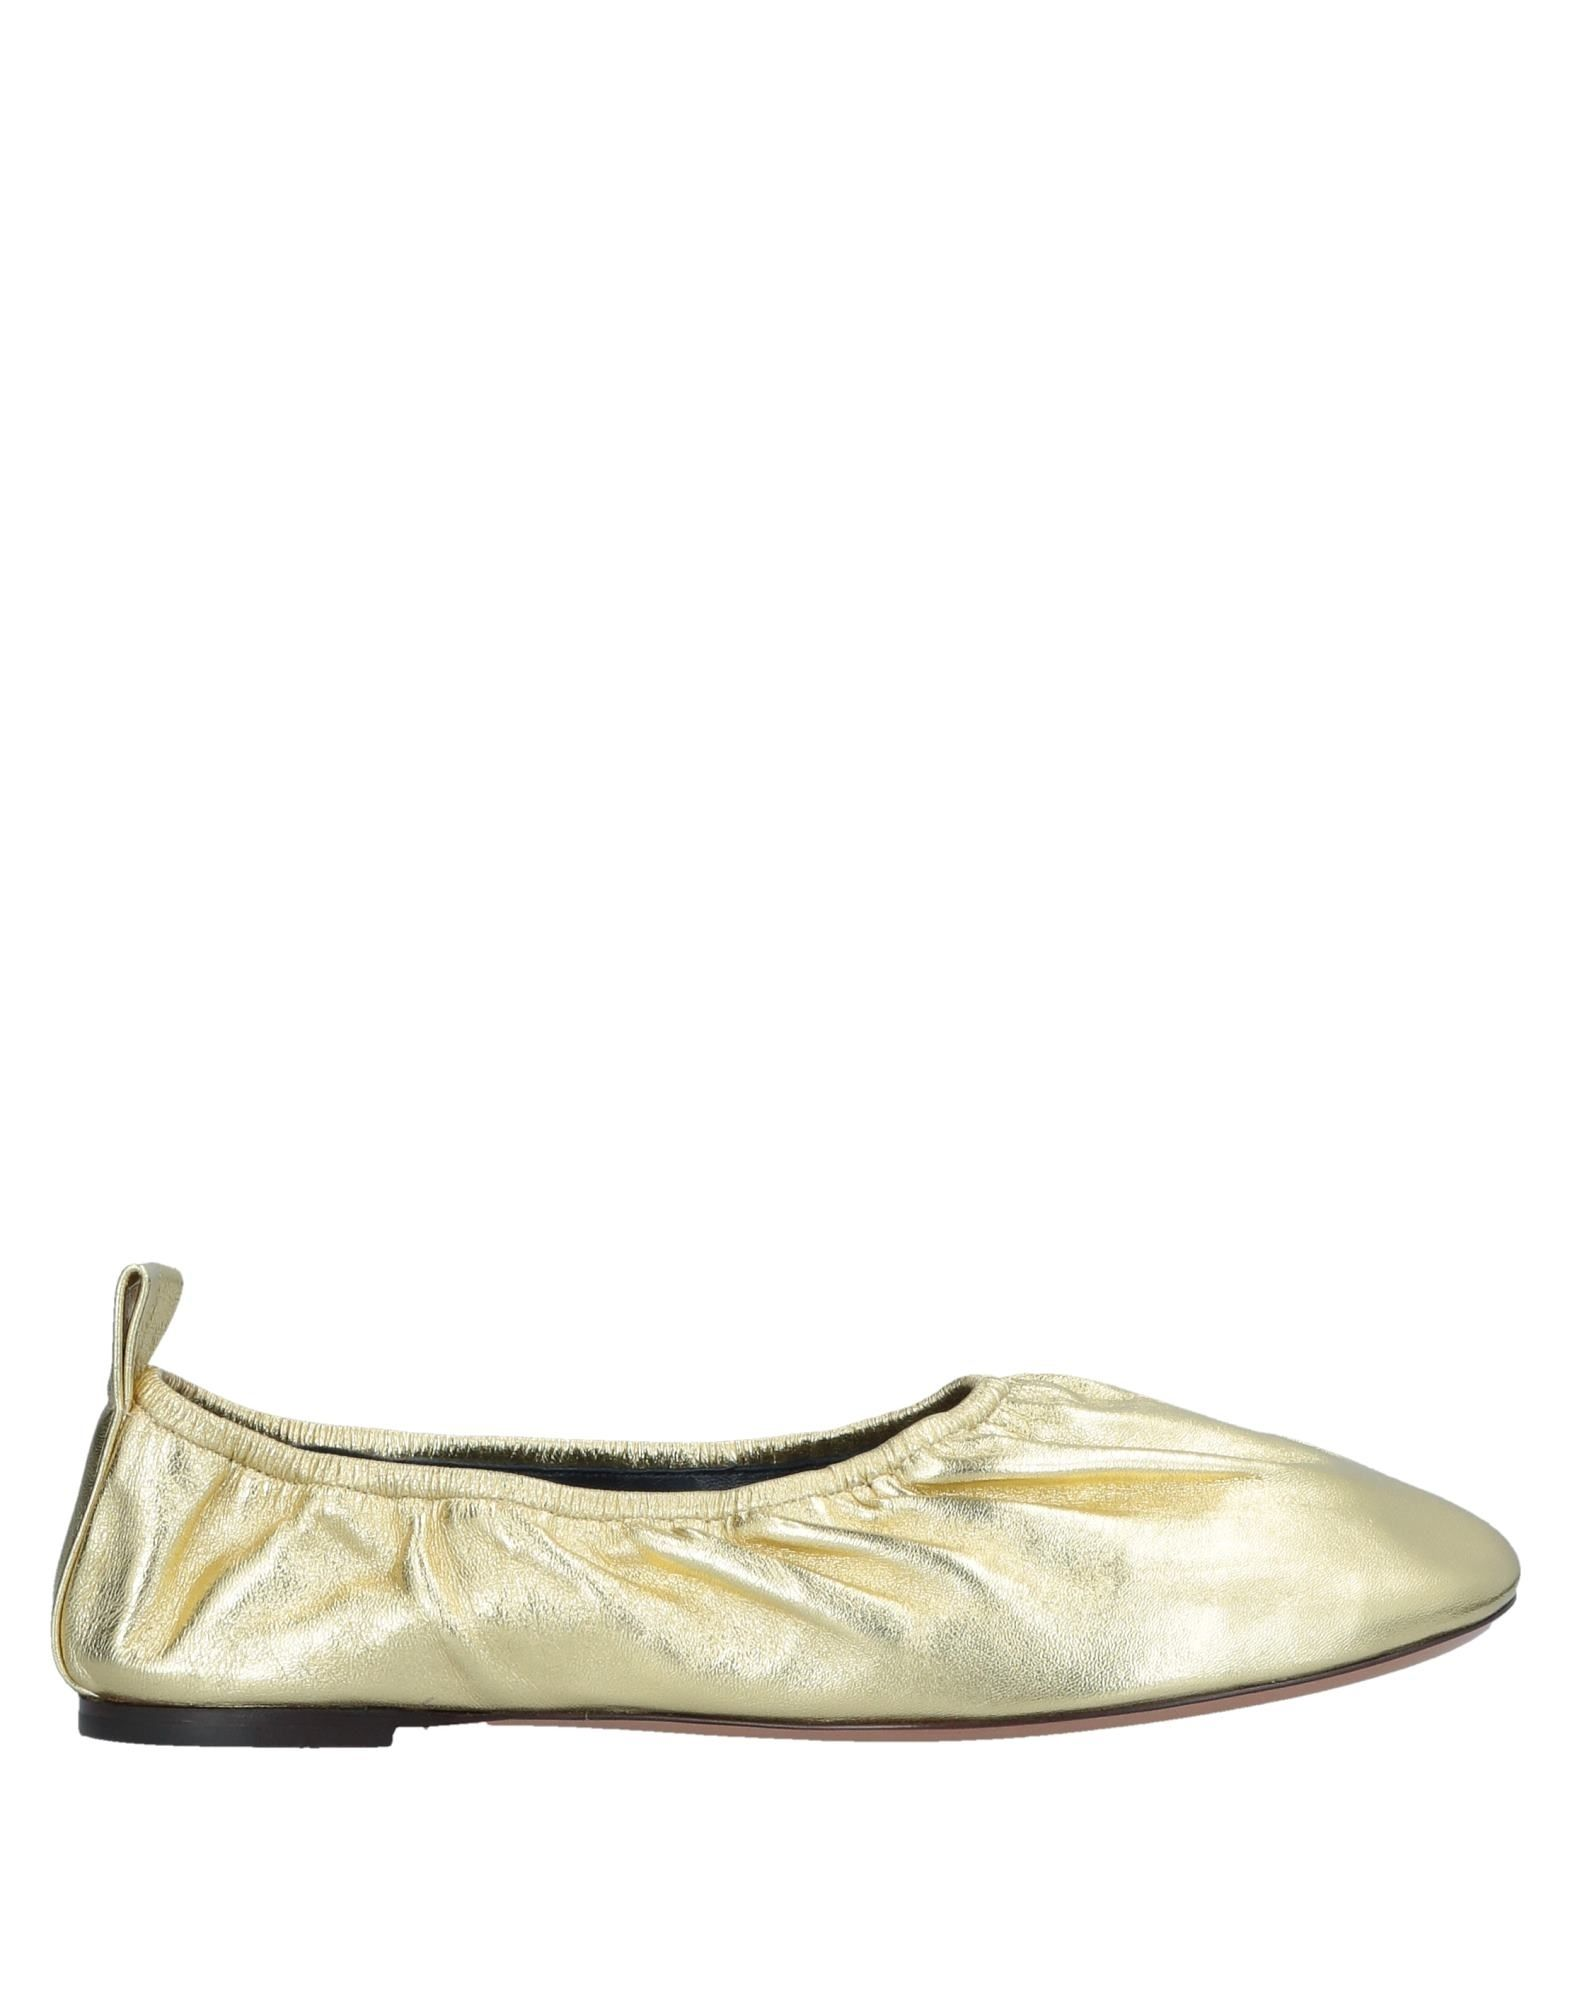 Celine Ballet Flats - Women on Celine Ballet Flats online on Women  Australia - 11508626LP a6629c